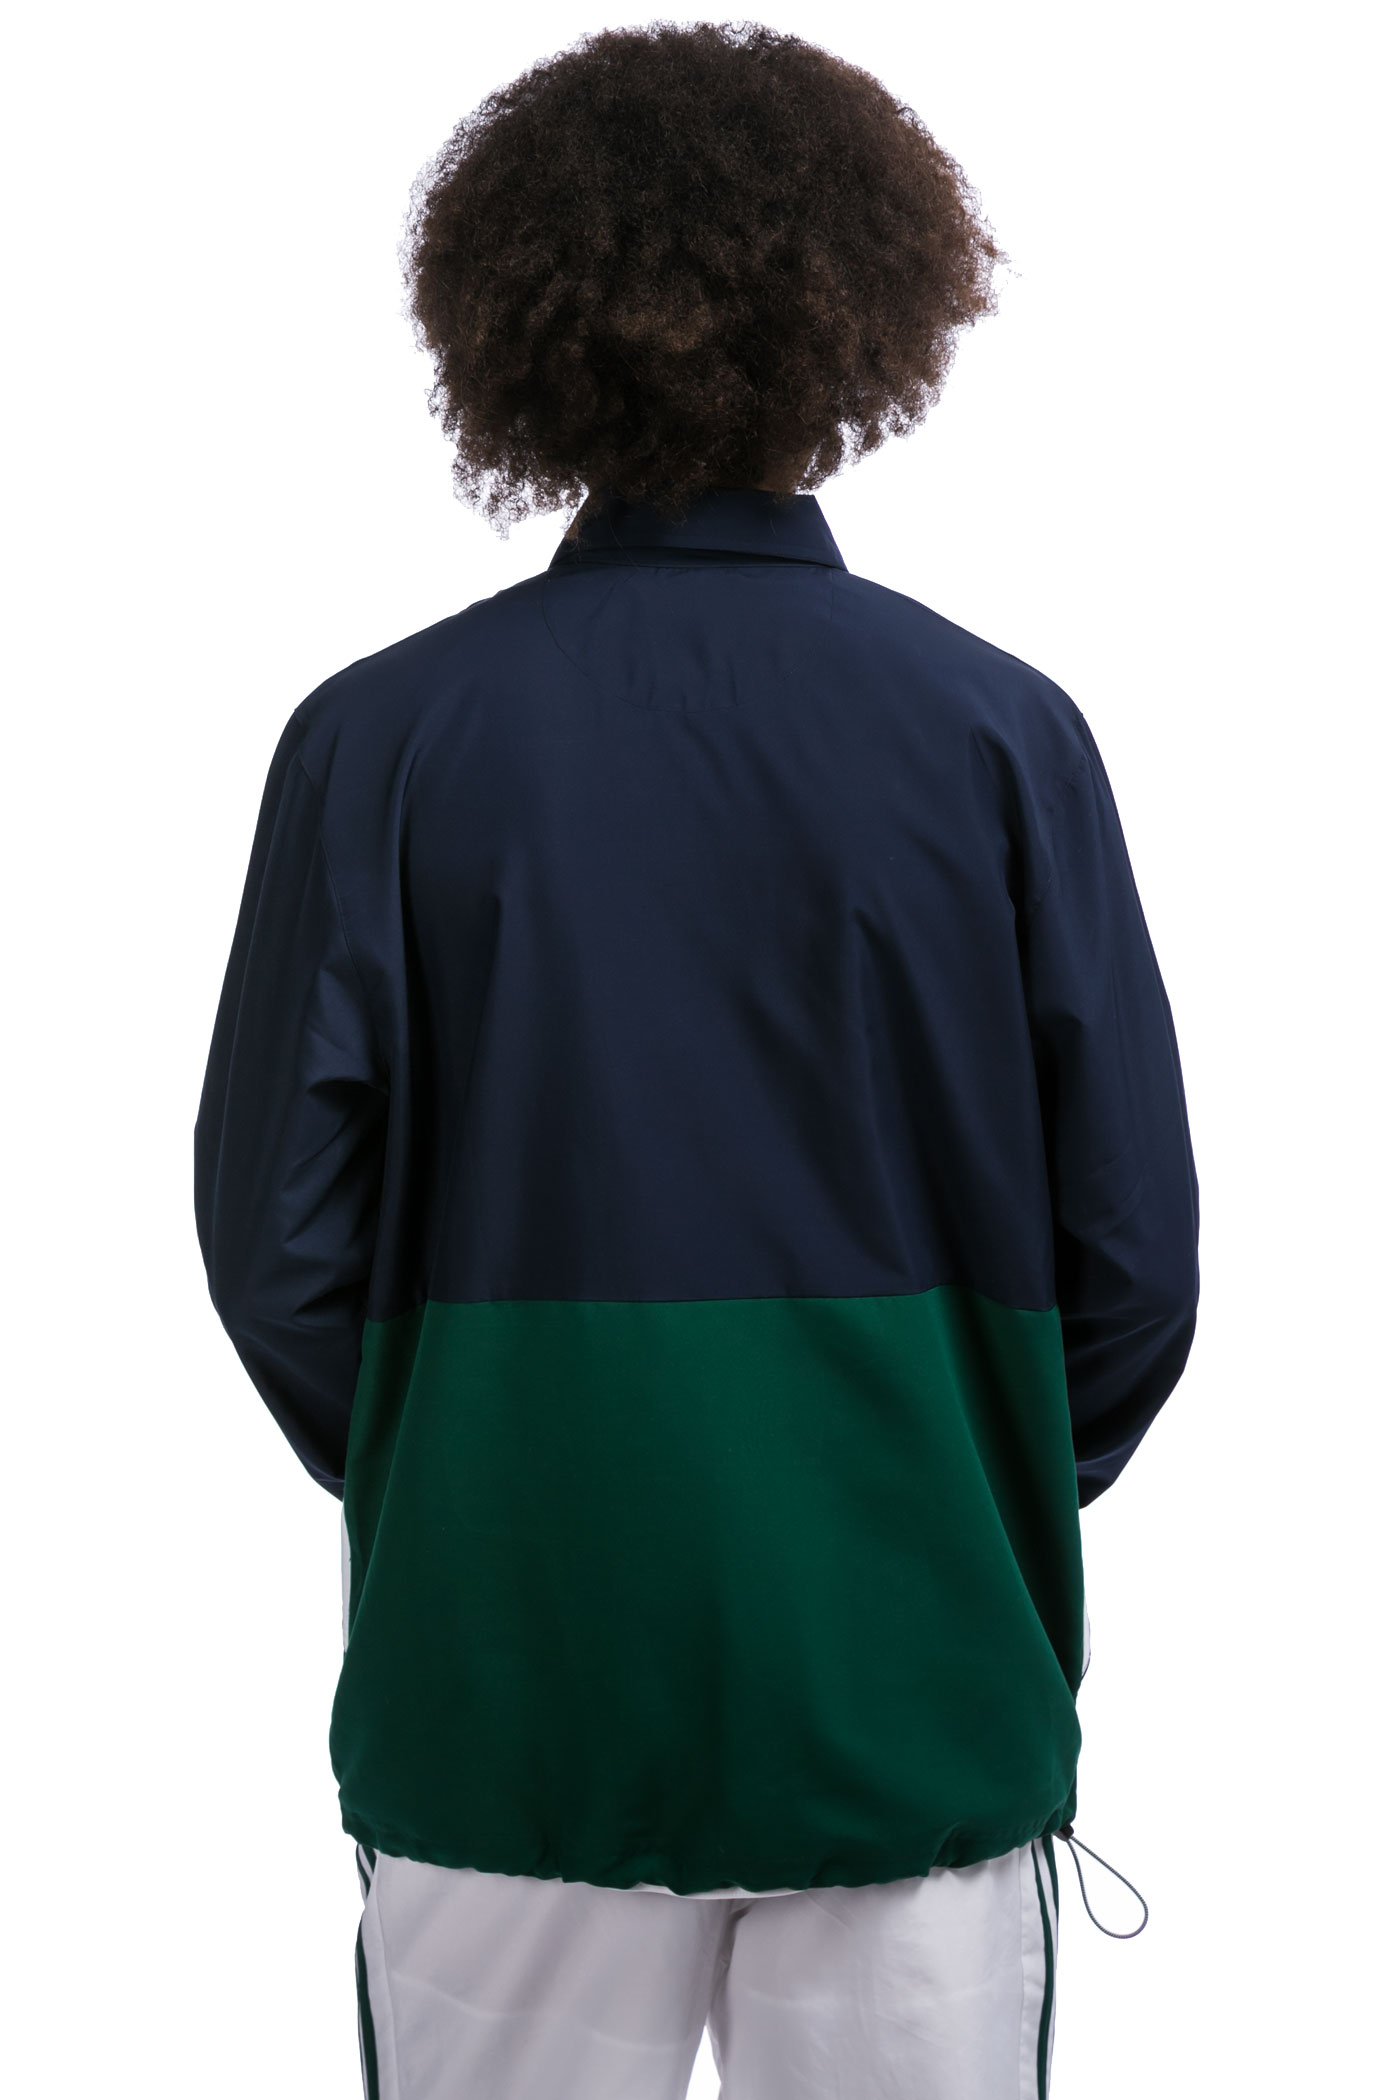 adidas pullover coach jacket indigo green buy at skatedeluxe. Black Bedroom Furniture Sets. Home Design Ideas